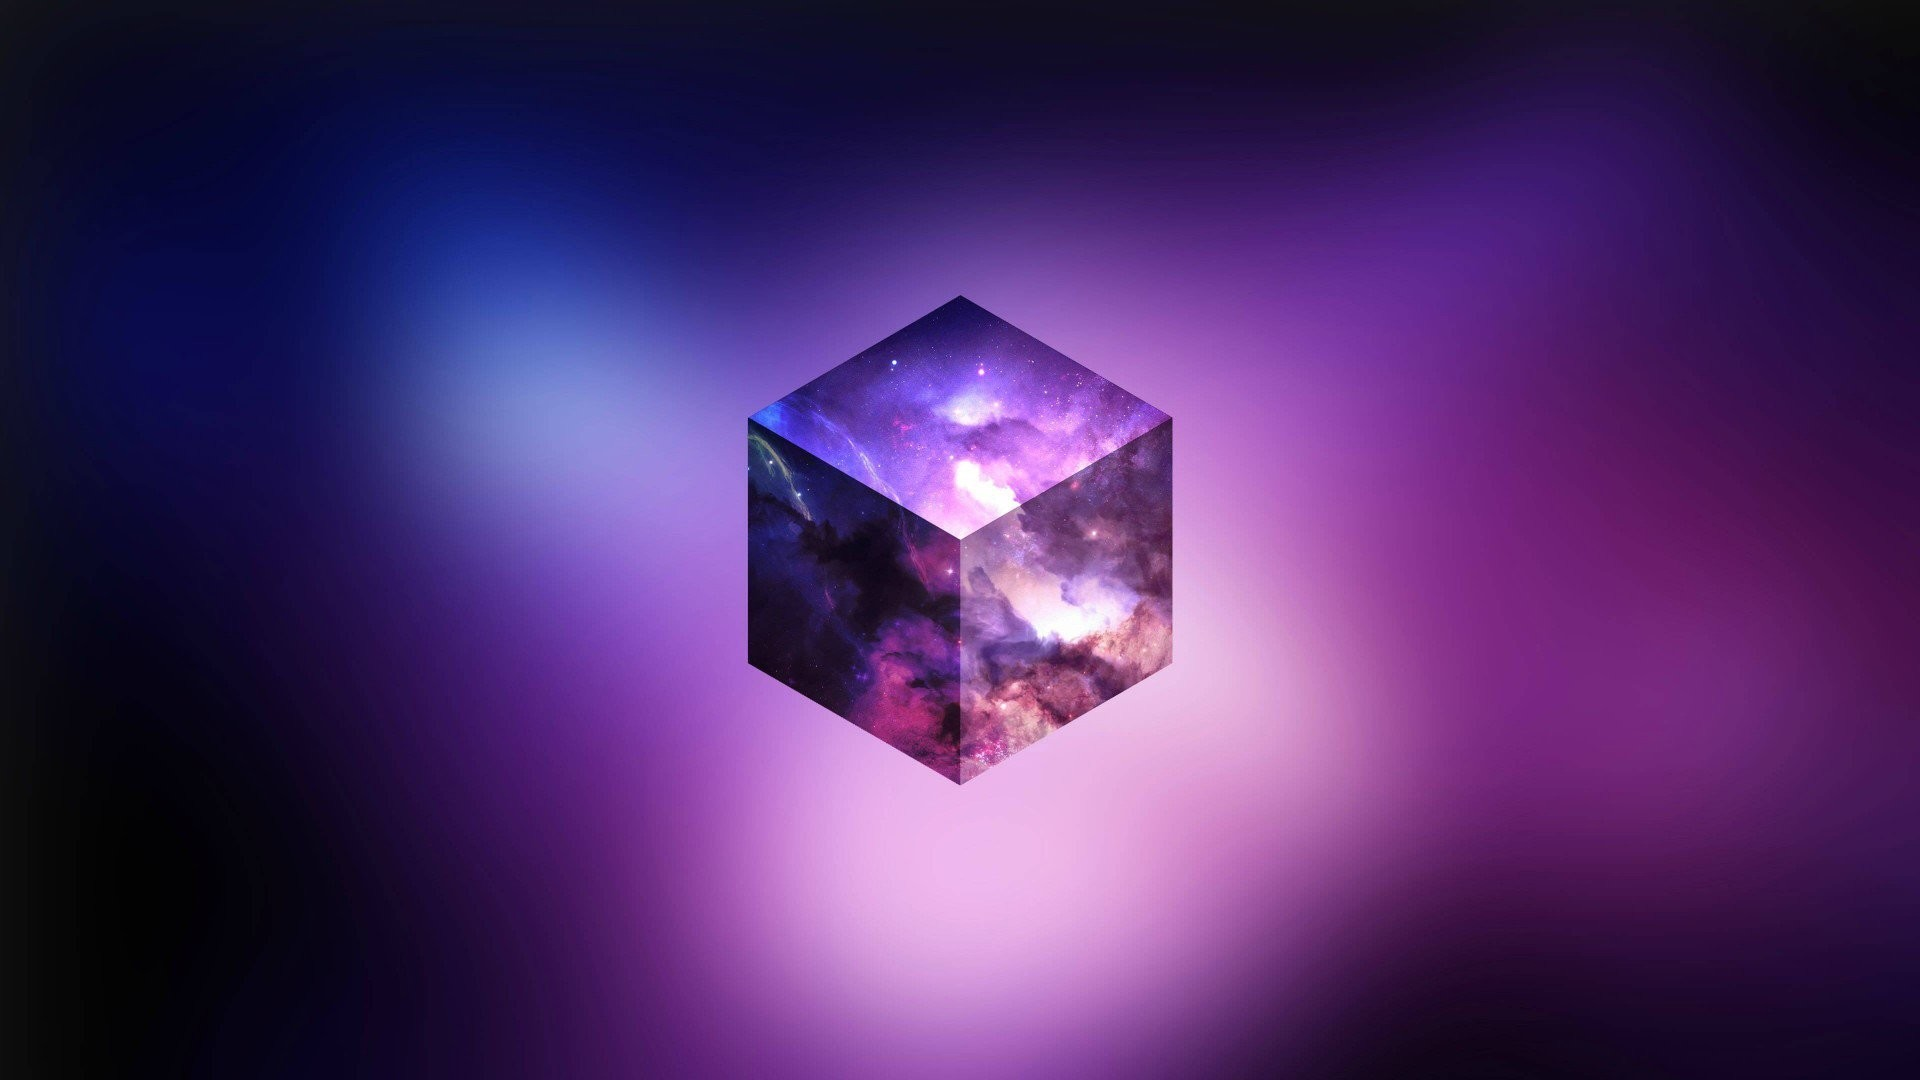 Abstract – Cube Abstract Purple Space Sky Stars Wallpaper